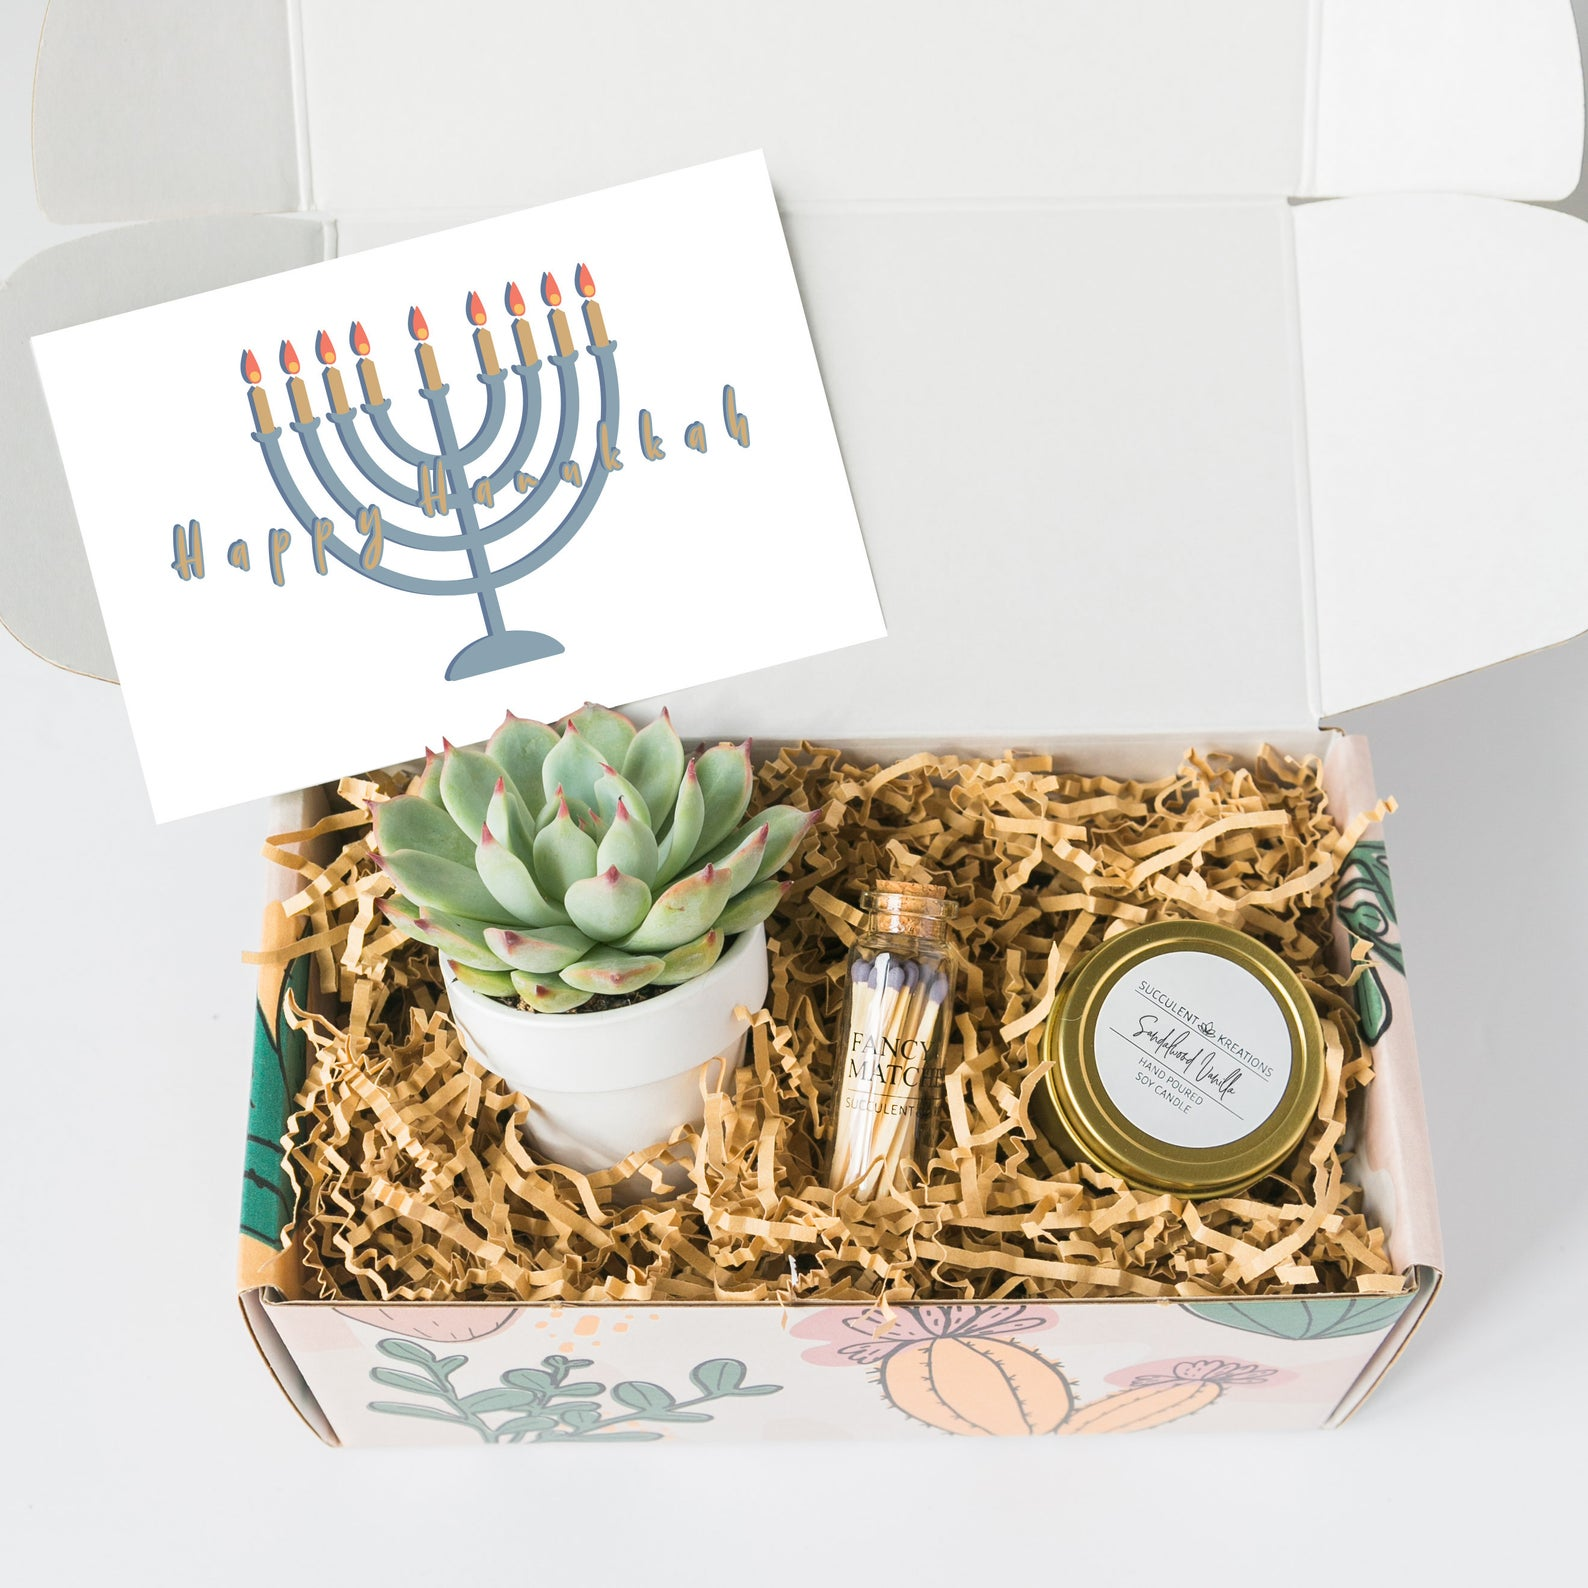 Best Hanukkah gifts from small businesses: a Hanukkah succulent gift box